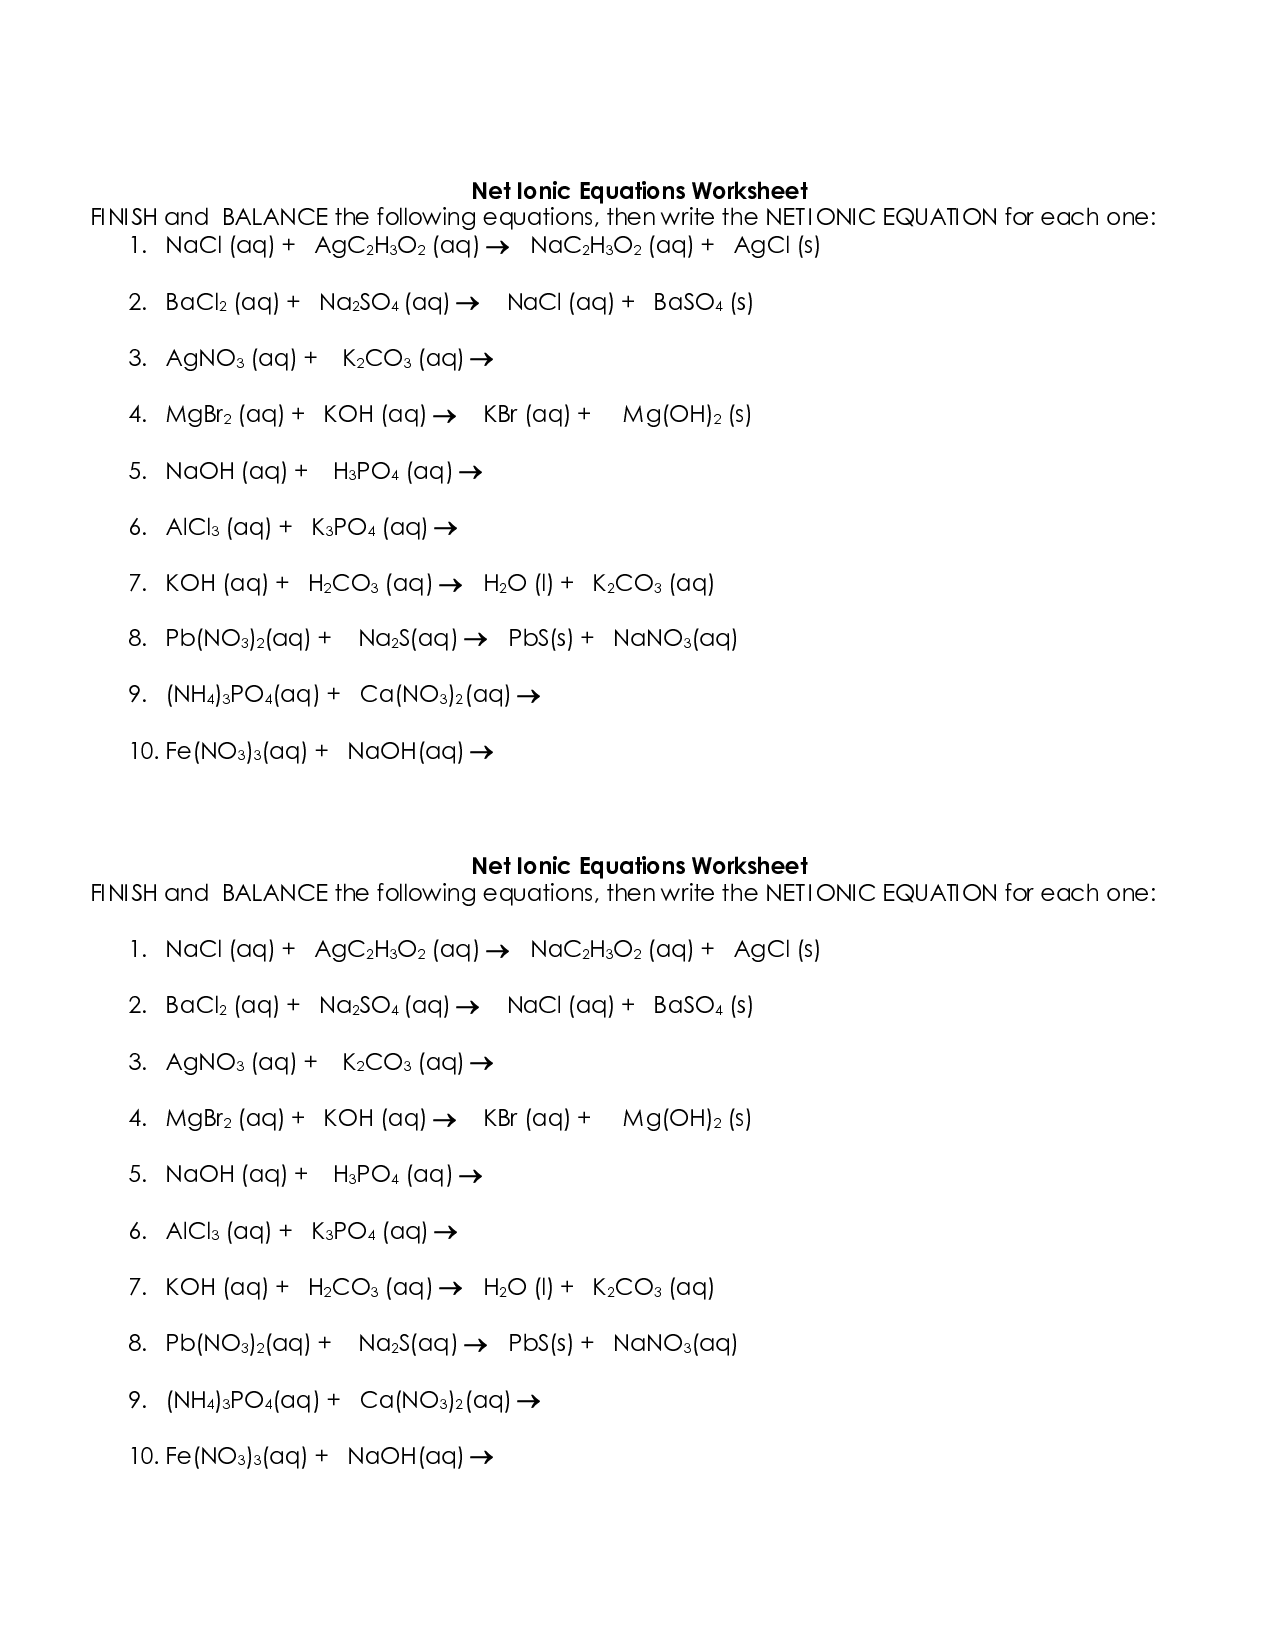 Net Ionic Equations Advanced Chem Worksheet 10 4 Answer